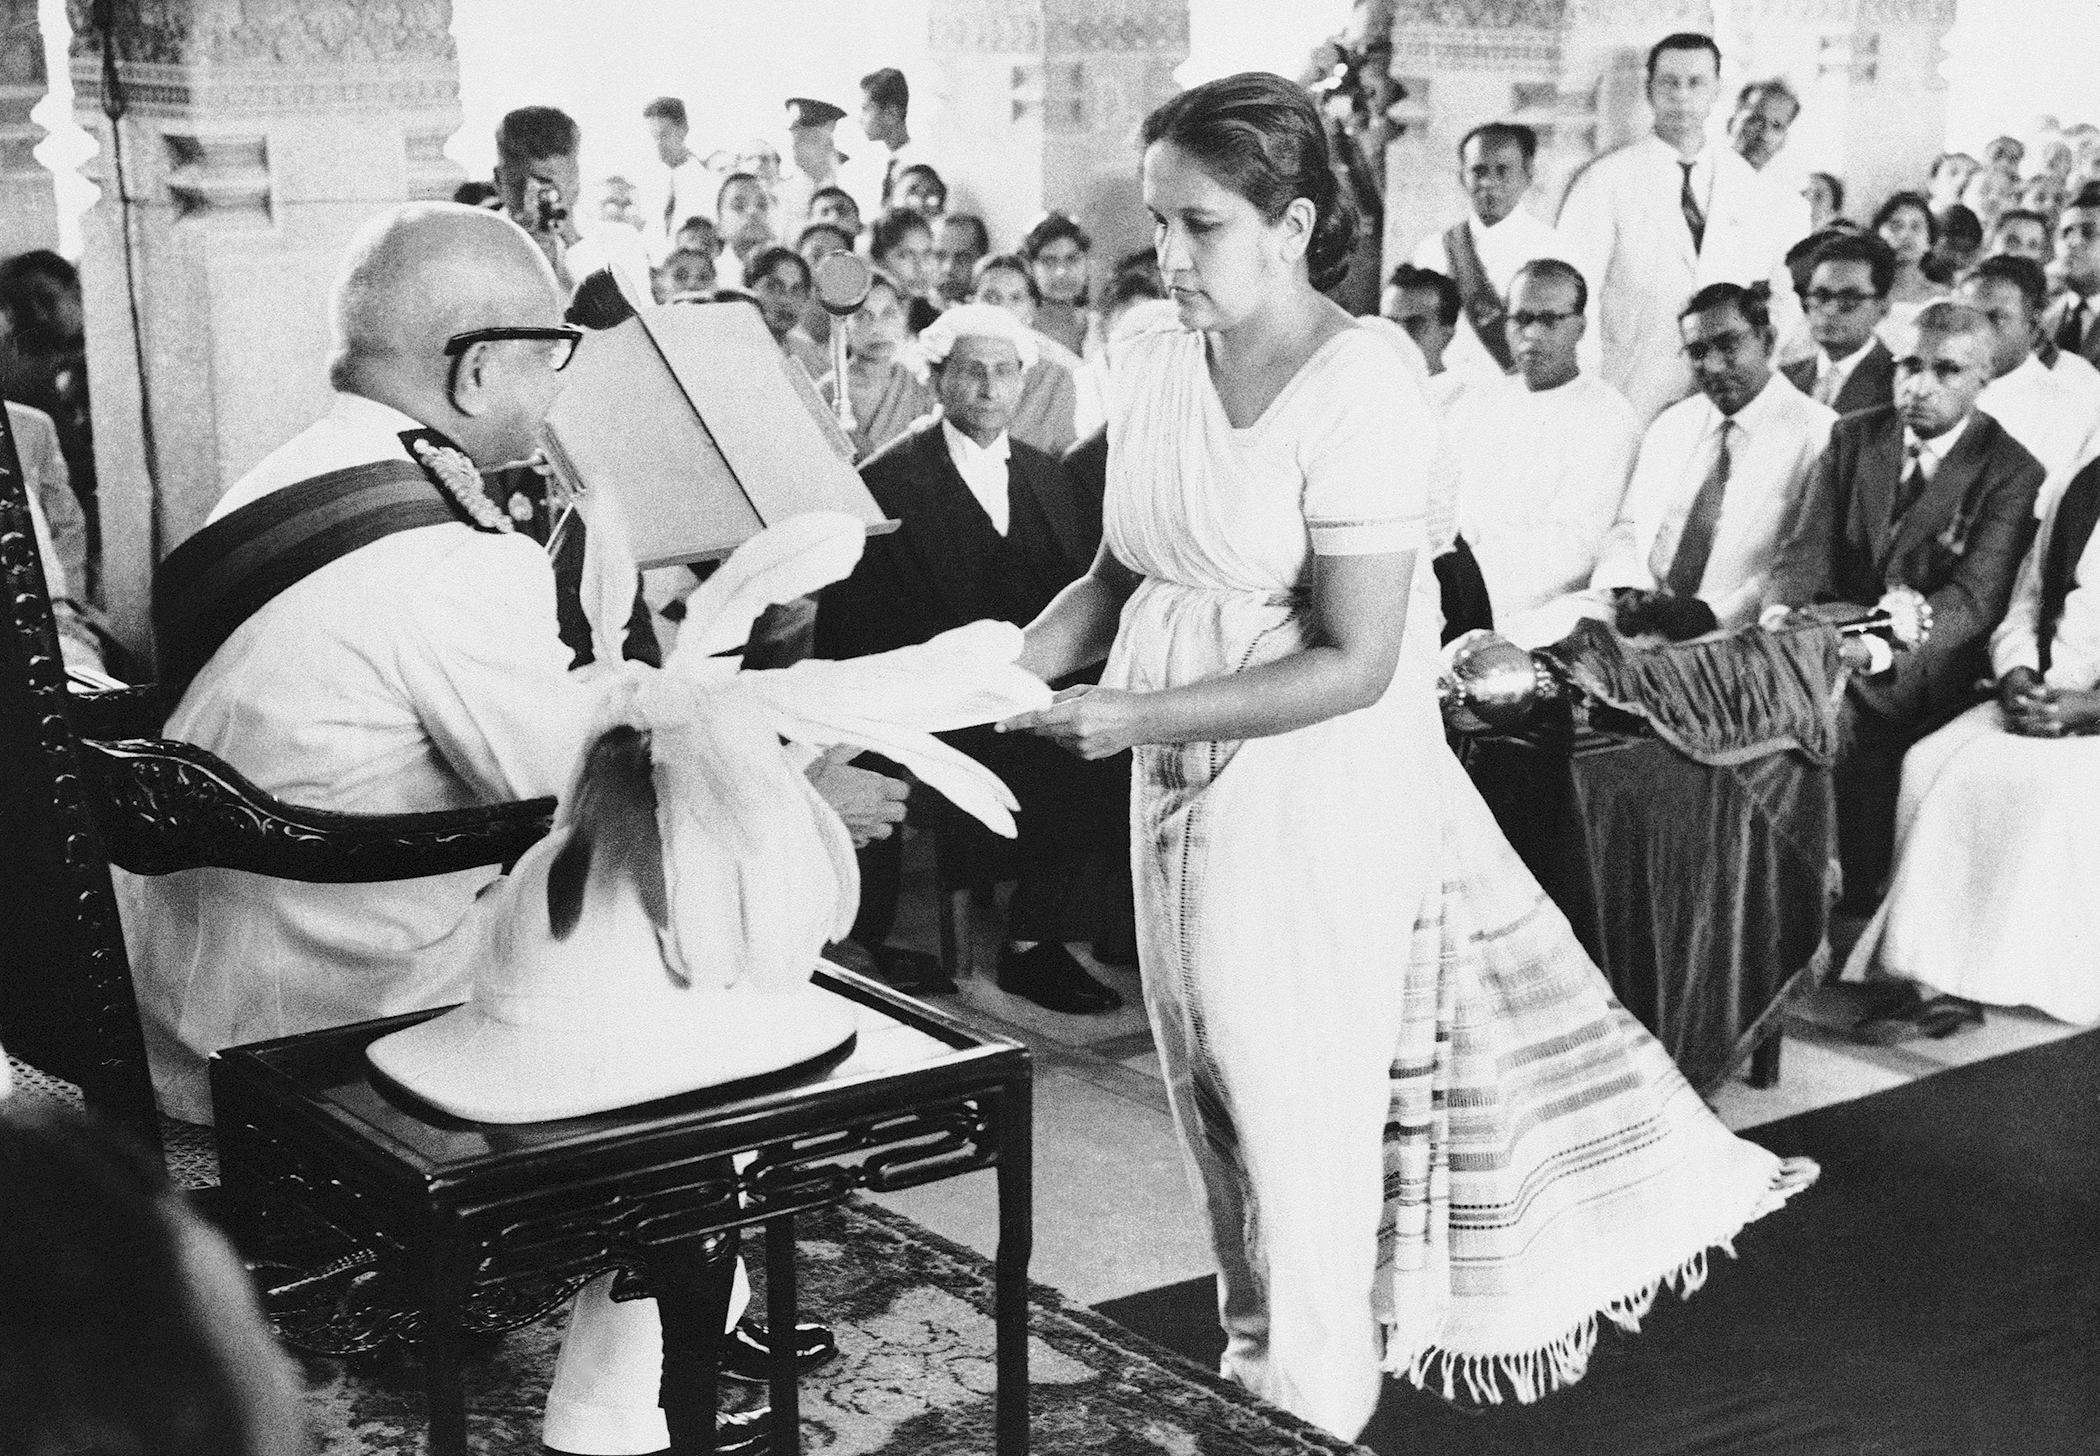 The Prime Minister of Ceylon, Mrs. Sirimavo Bandaranaike, hands over a copy of the throne speech to Sir Oliver Goonetilleke, the Governor General of Ceylon, at the ceremonial inauguration of the New Ceylon Parliament in Colombo on August 12, 1960. In the centre background wearing a wig and gown, is Ralph Deraniyagala clerk of the Ceylon House of Representatives. At right are (left to right) T.B. Ilangaratne the minister of trade: Felix Dias Bandaranaike minister of finance: and Dudley Senanayake, leader of the opposition (wearing a dark suit).